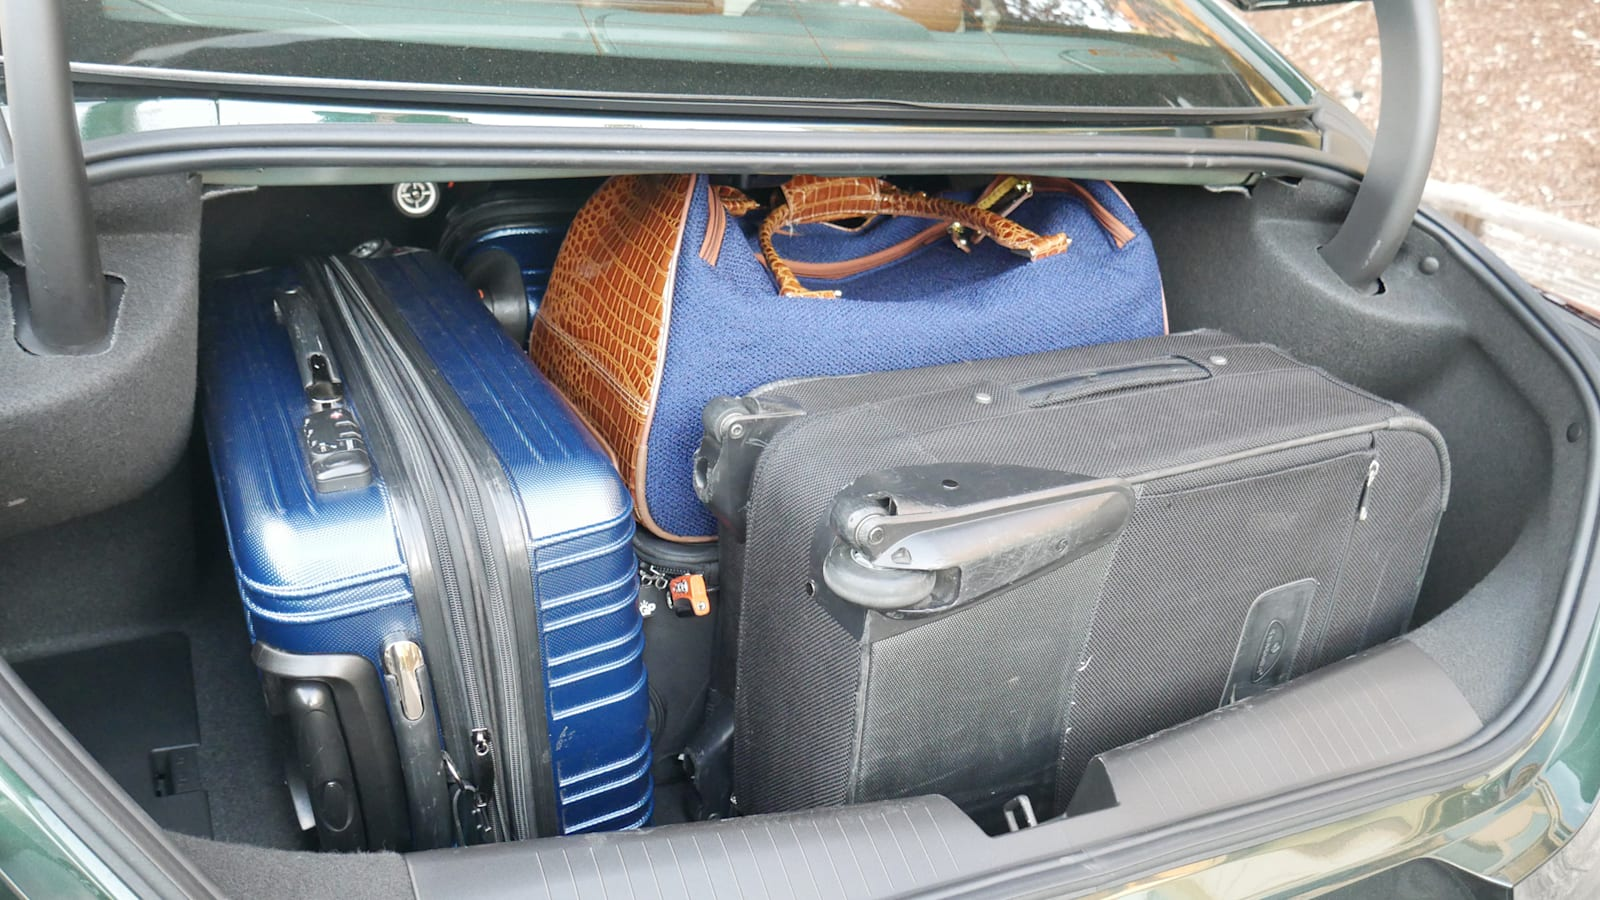 Cadillac CT4 Luggage Test loaded